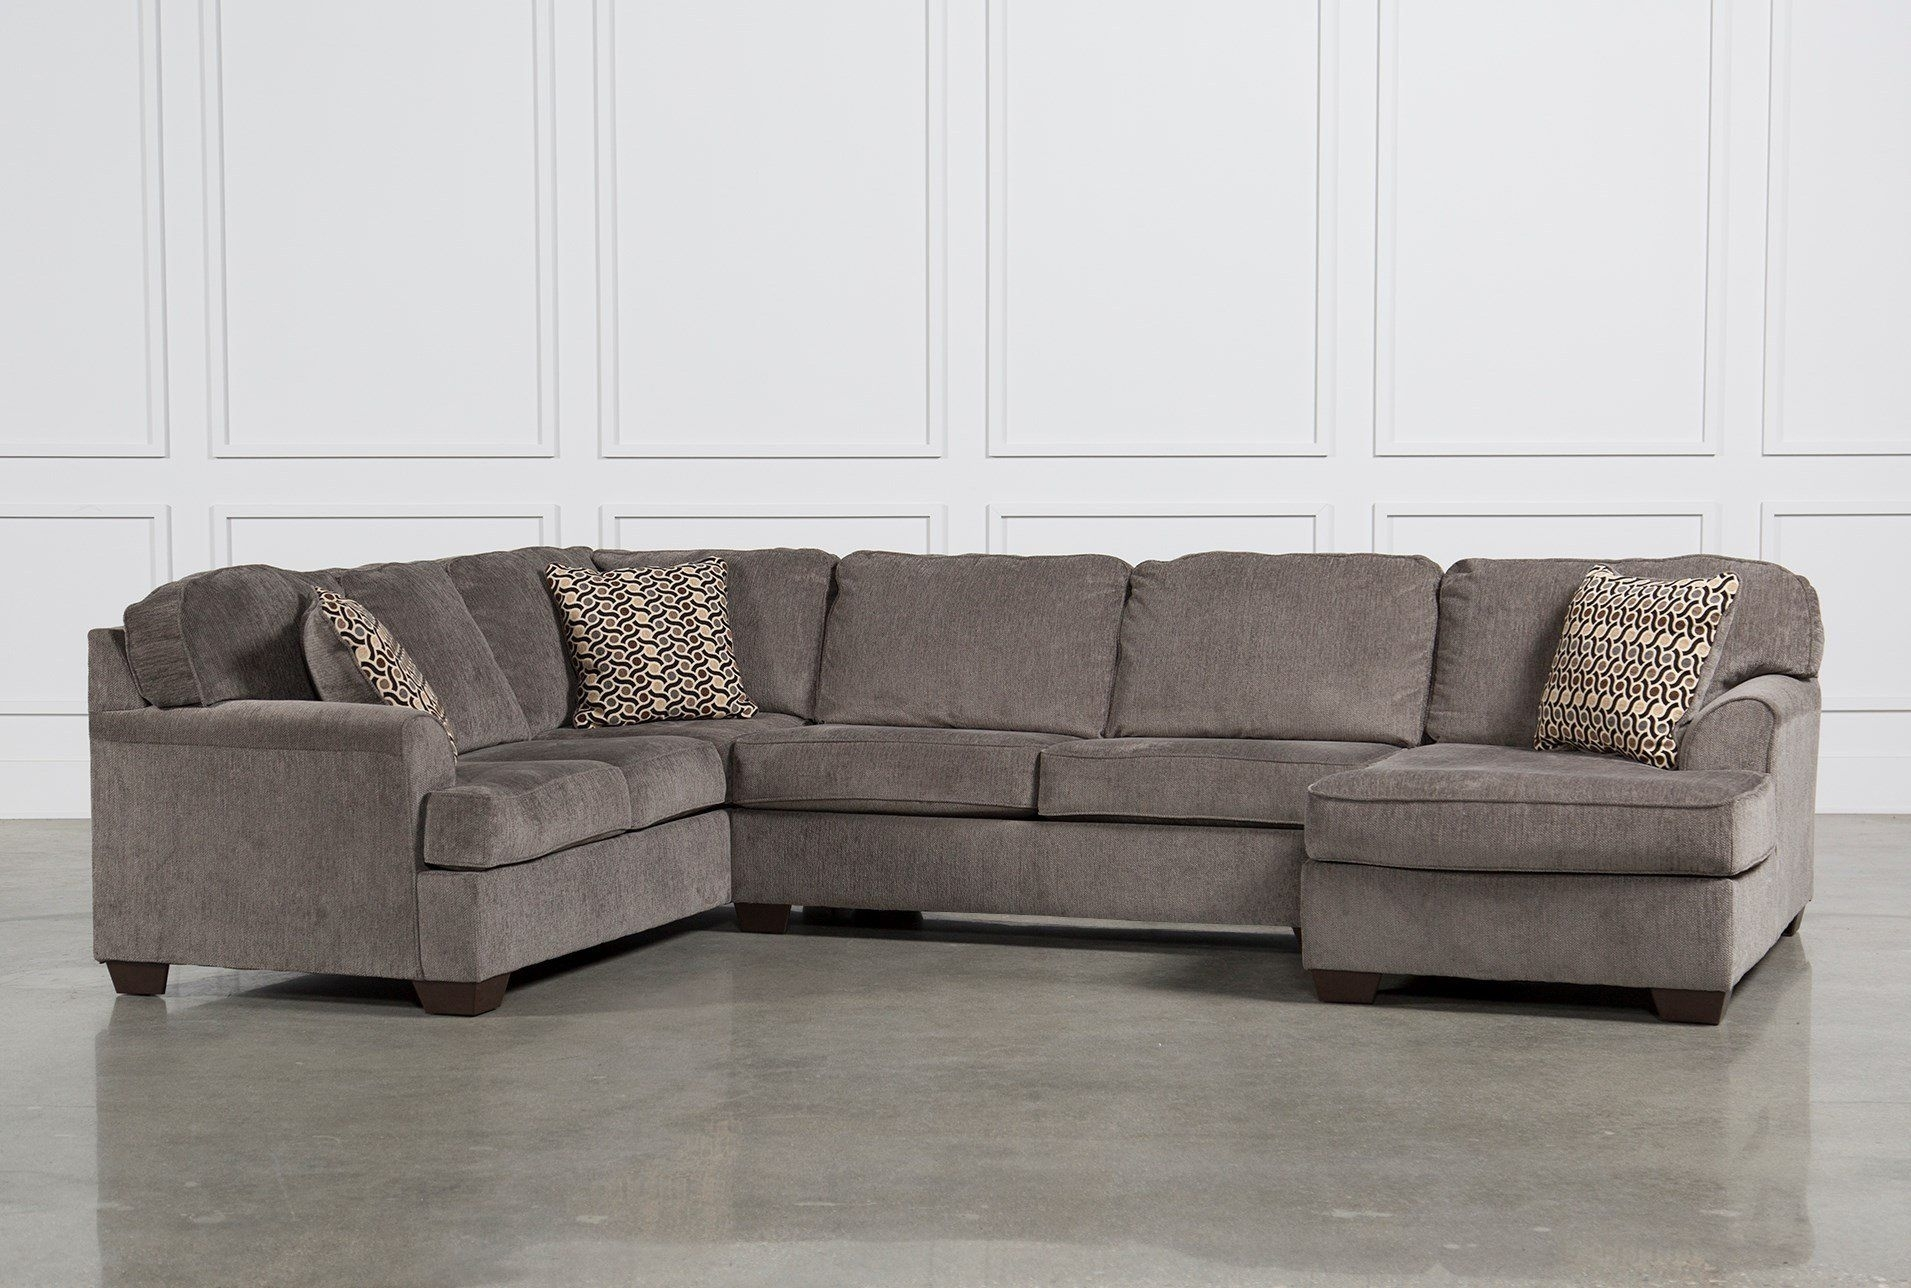 Loric Smoke 3 Piece Sectional W/raf Chaise   Upholstery, Pillows And Pertaining To Malbry Point 3 Piece Sectionals With Raf Chaise (View 2 of 25)